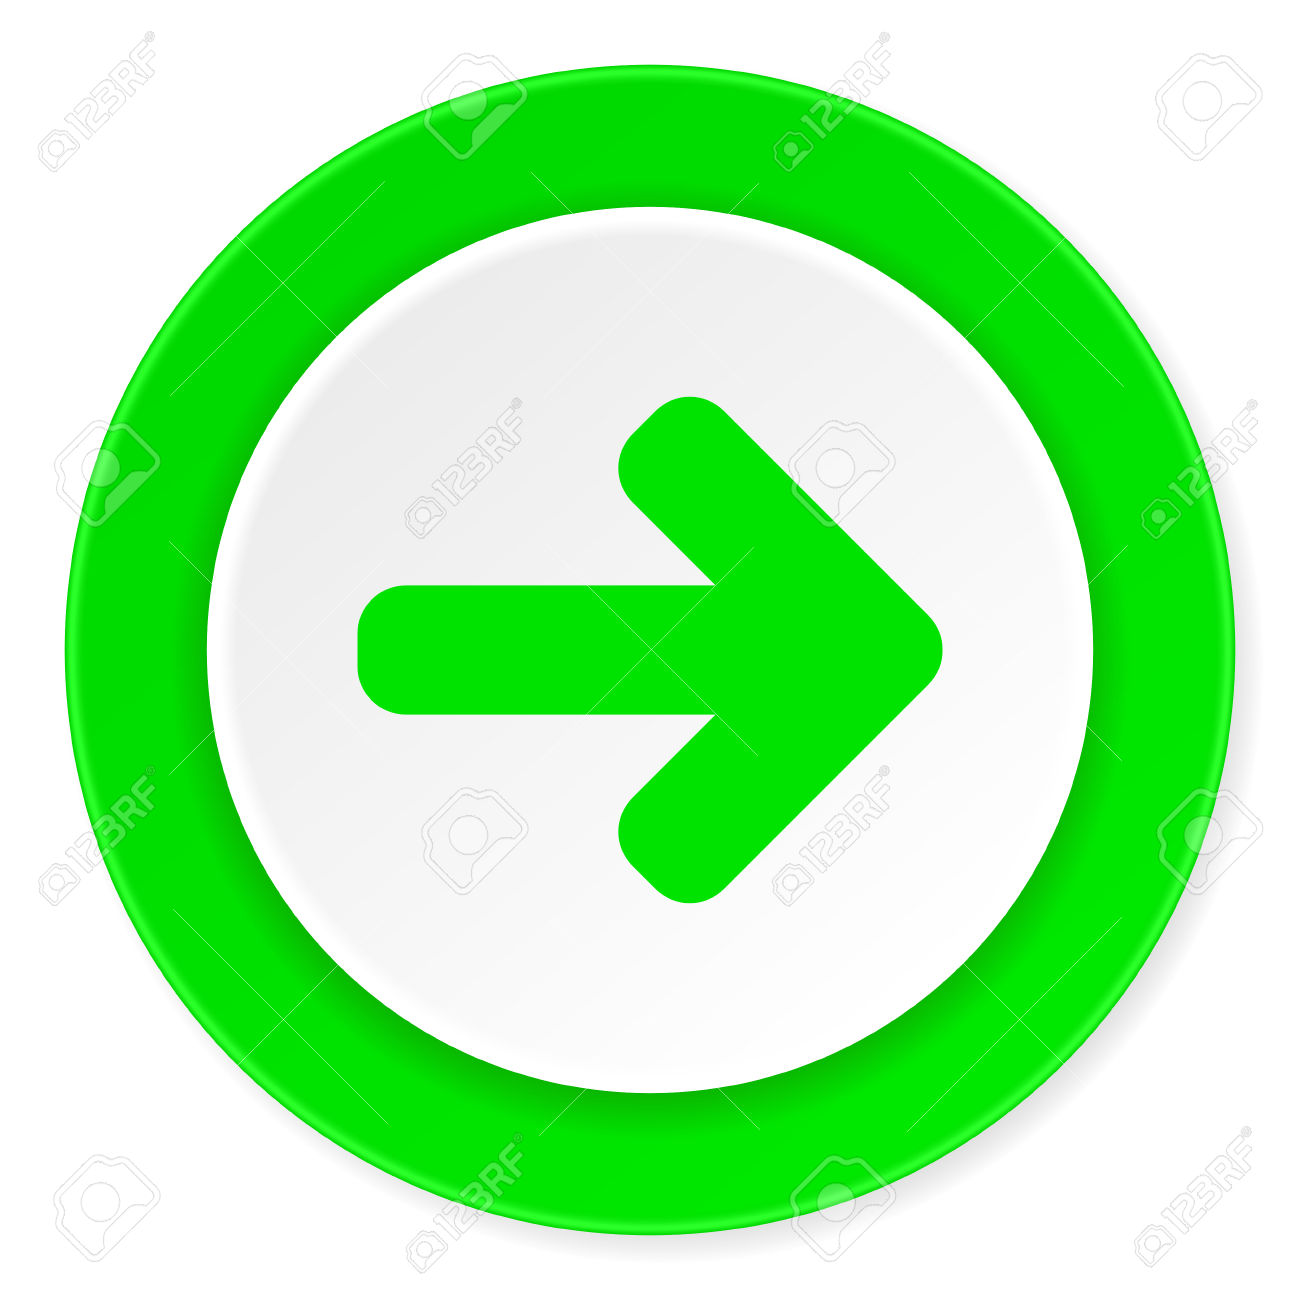 47813300-right-arrow-green-fresh-circle-3d-modern-flat-design-icon-on-white-background-Stock-Photo.jpg